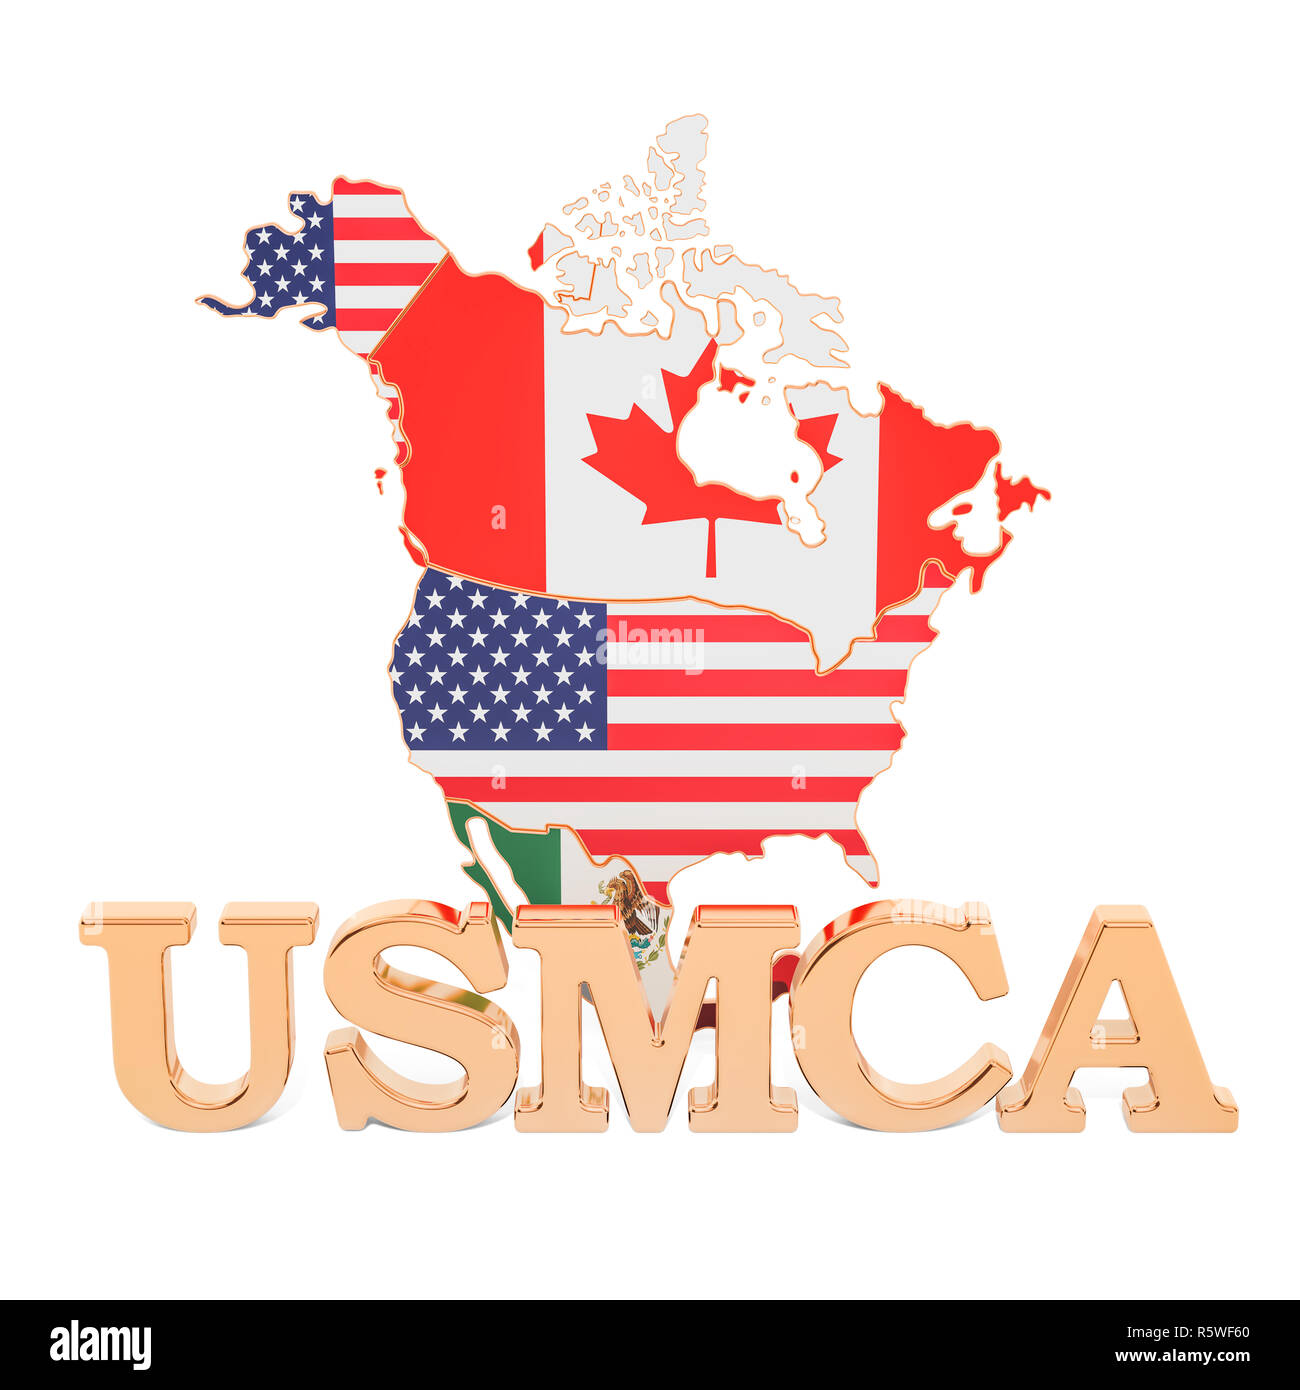 United States Mexico Canada Agreement, USMCA concept. 3D rendering Stock Photo